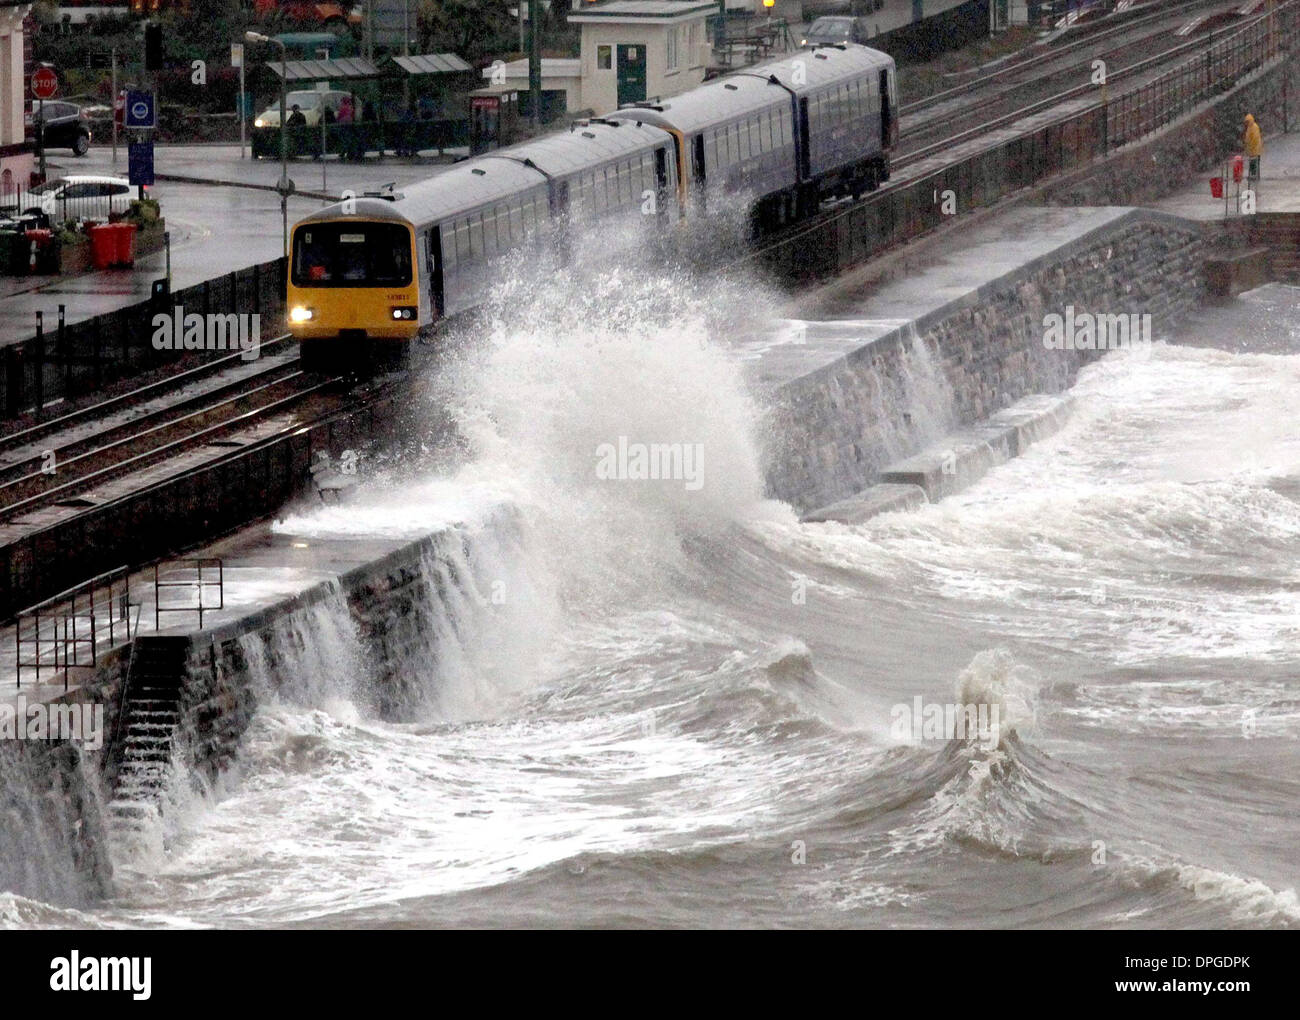 A train is battered by waves as it passes through Dawlish train station Stock Photo